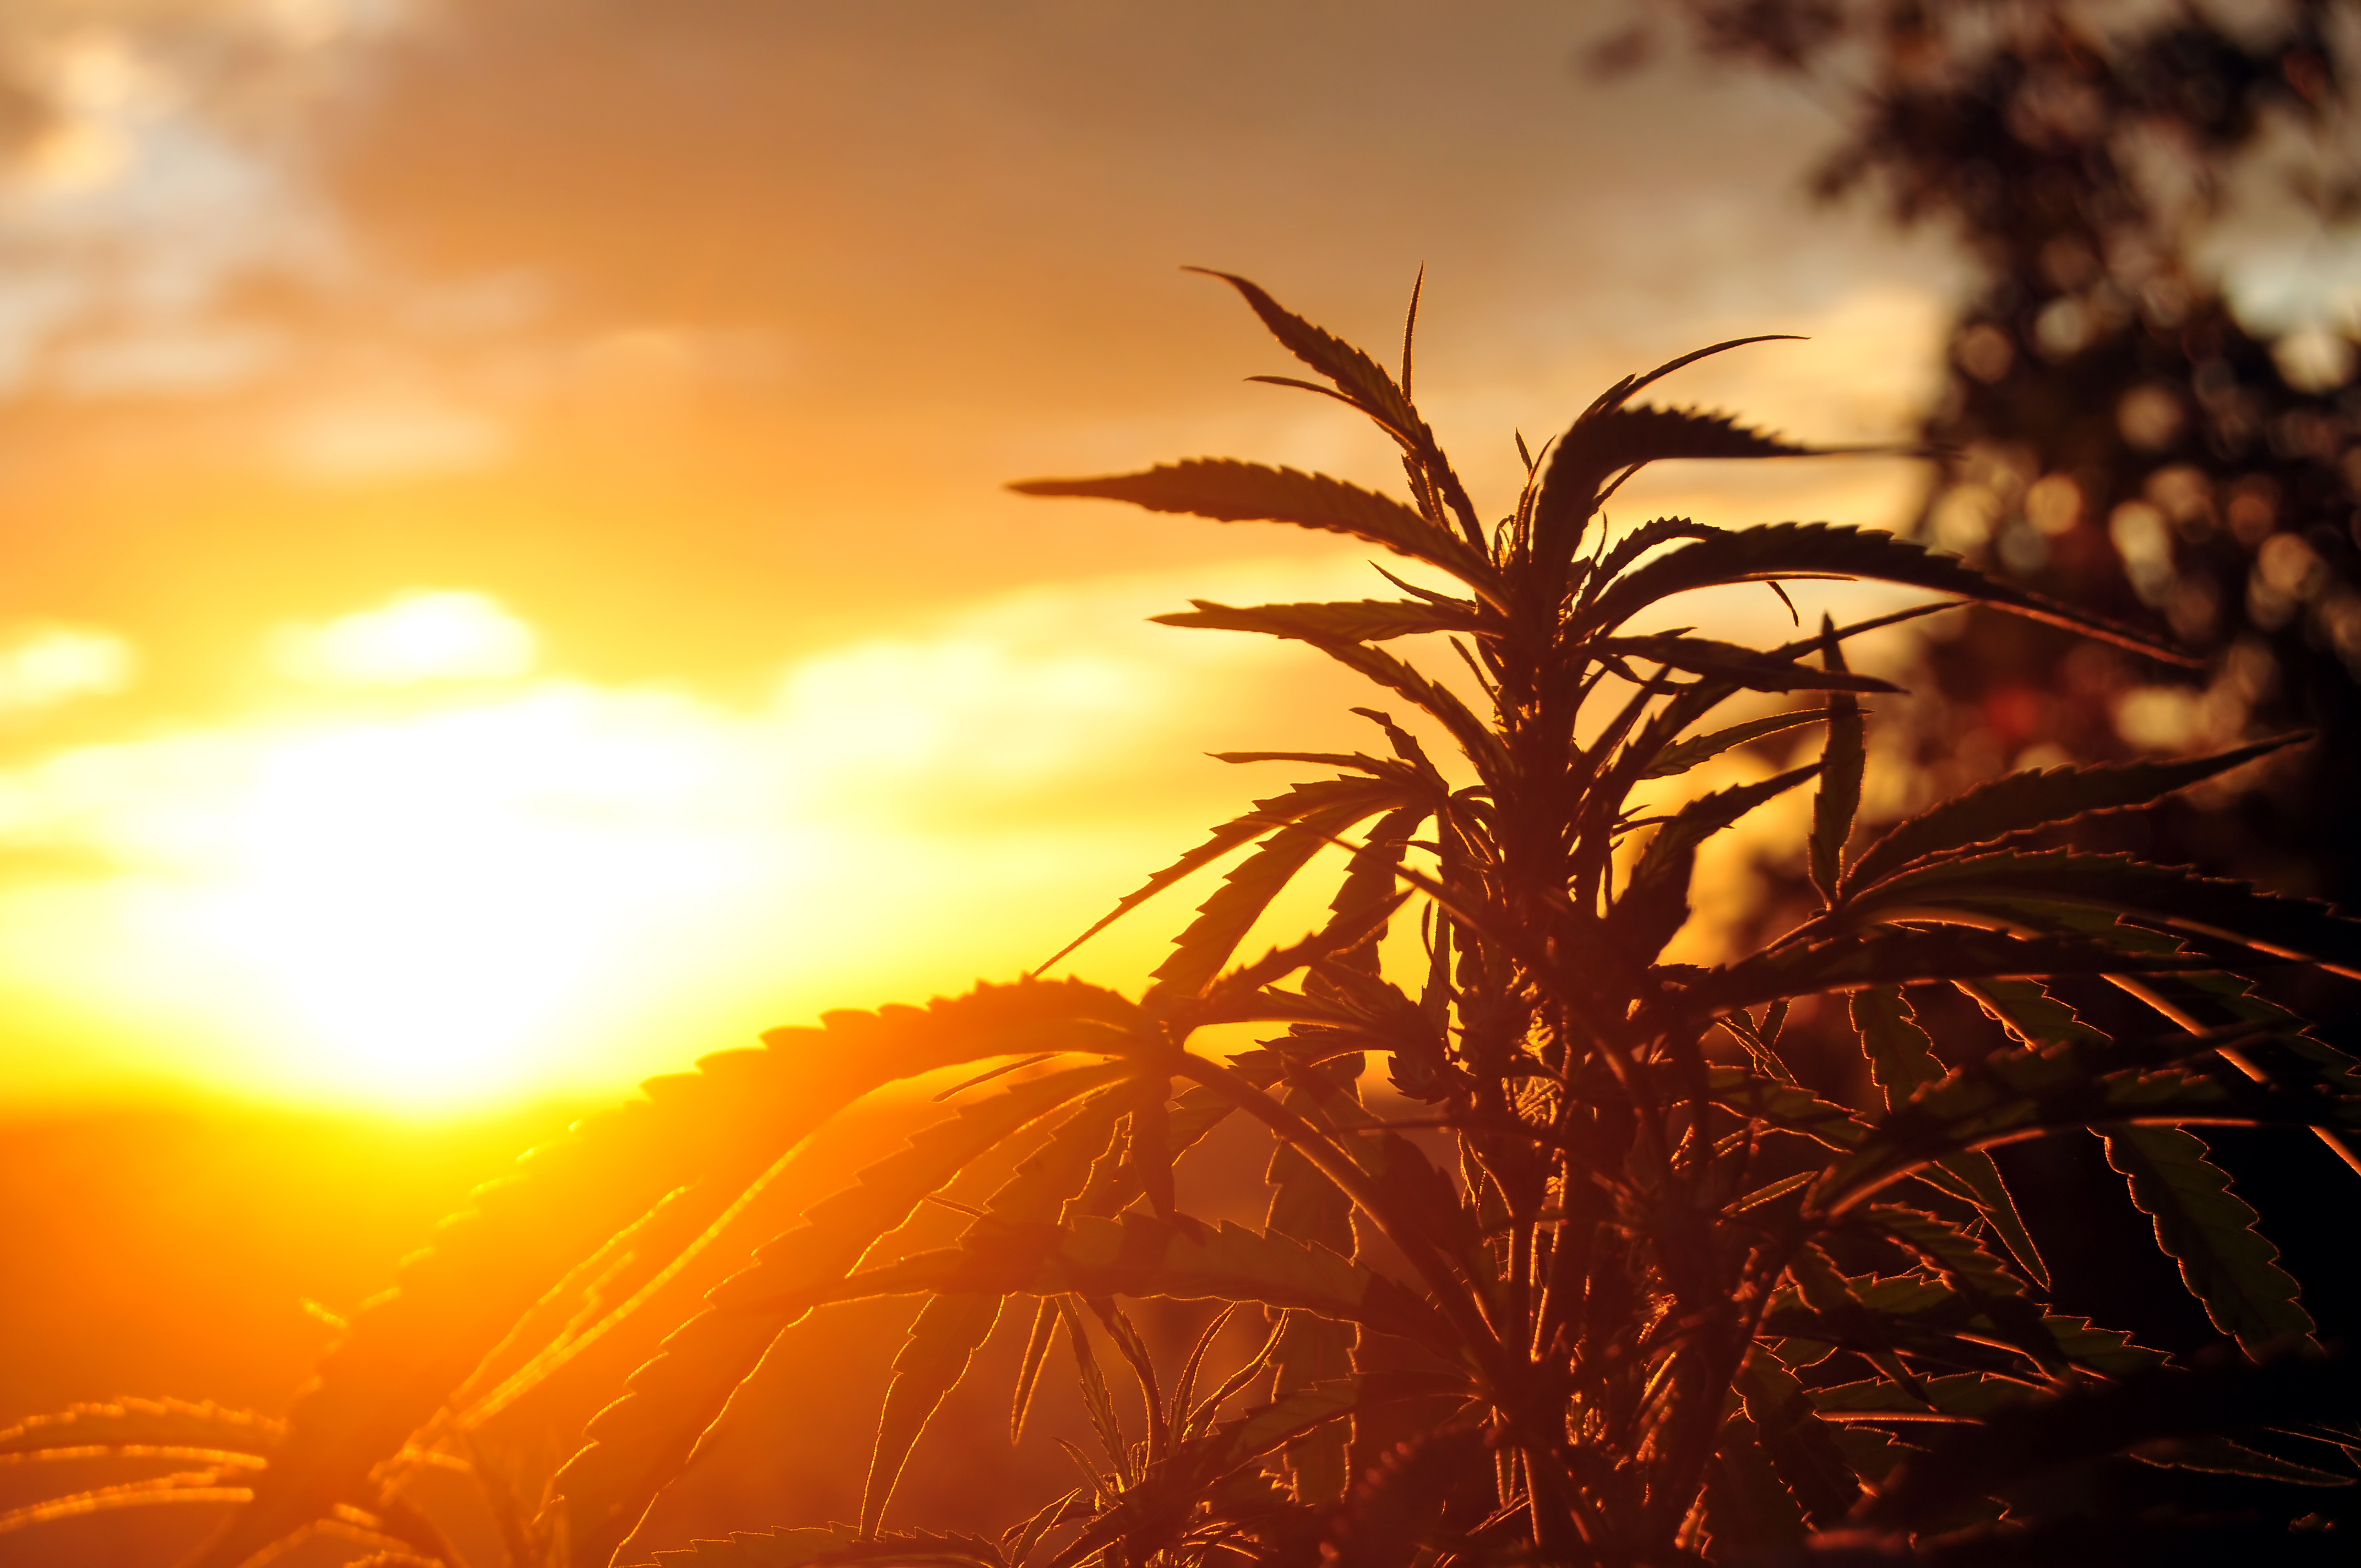 Marijuana plant used for medicinal cannabis with the sun setting behind it